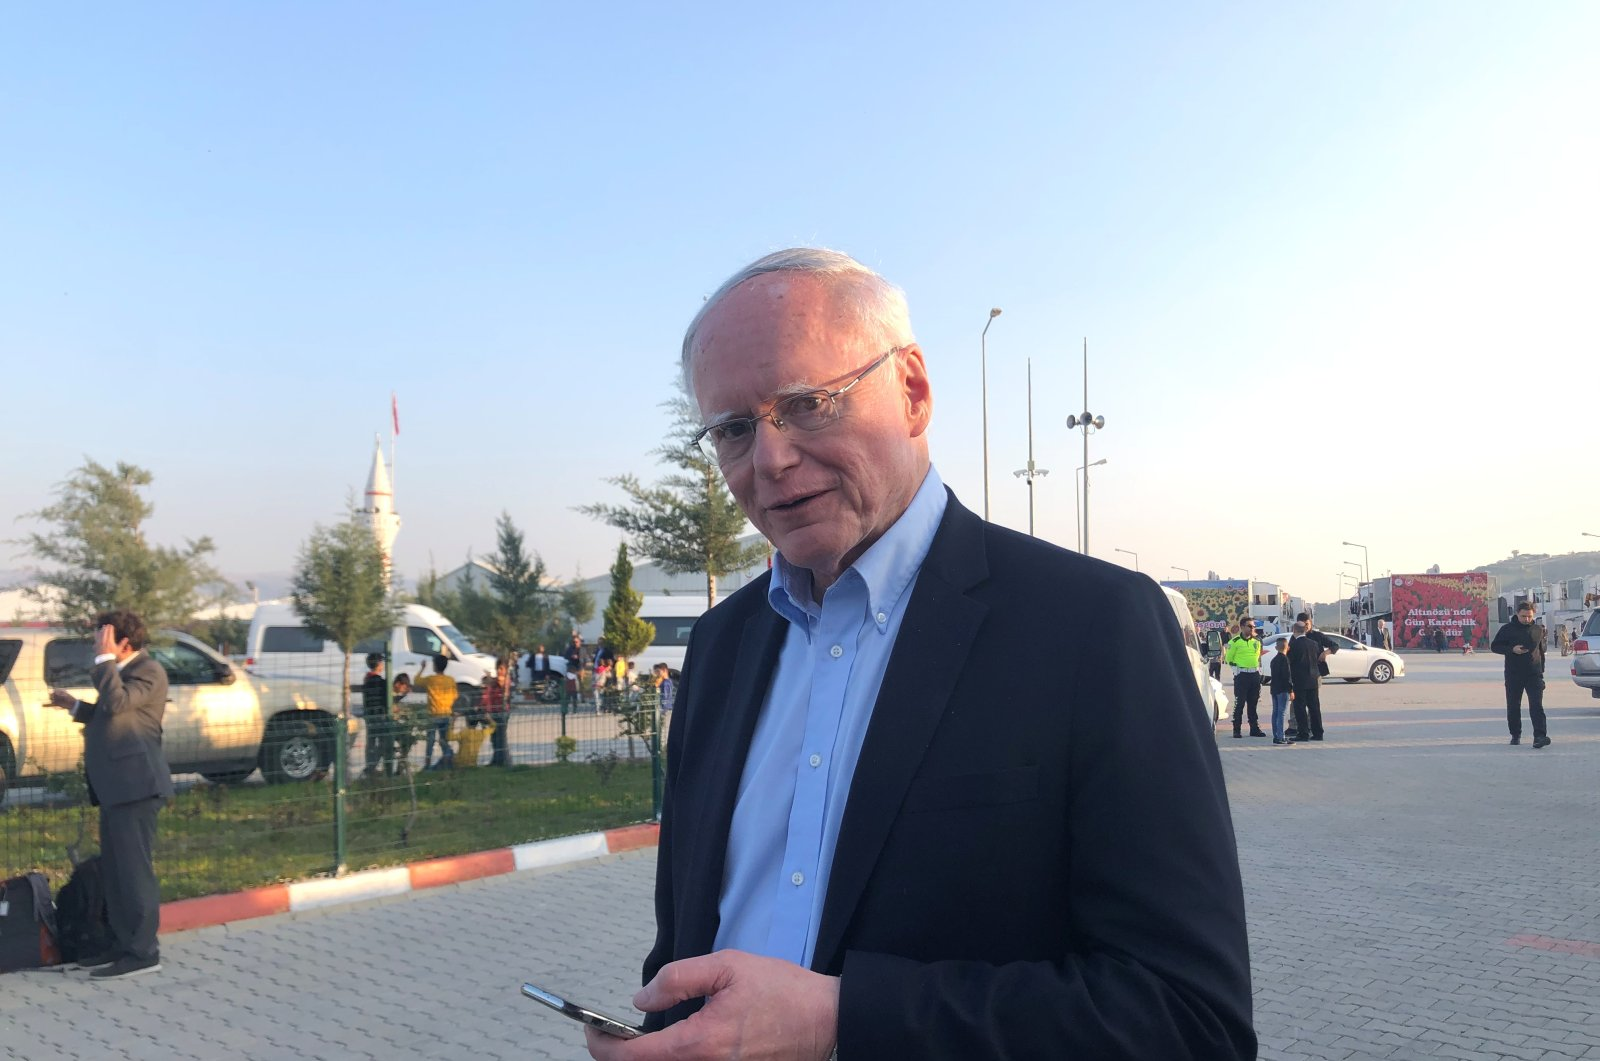 James Jeffrey, the U.S. envoy for Syria, is pictured outside the Boynuyoğun refugee camp near Hatay, Turkey, March 3, 2020. (Reuters Photo)